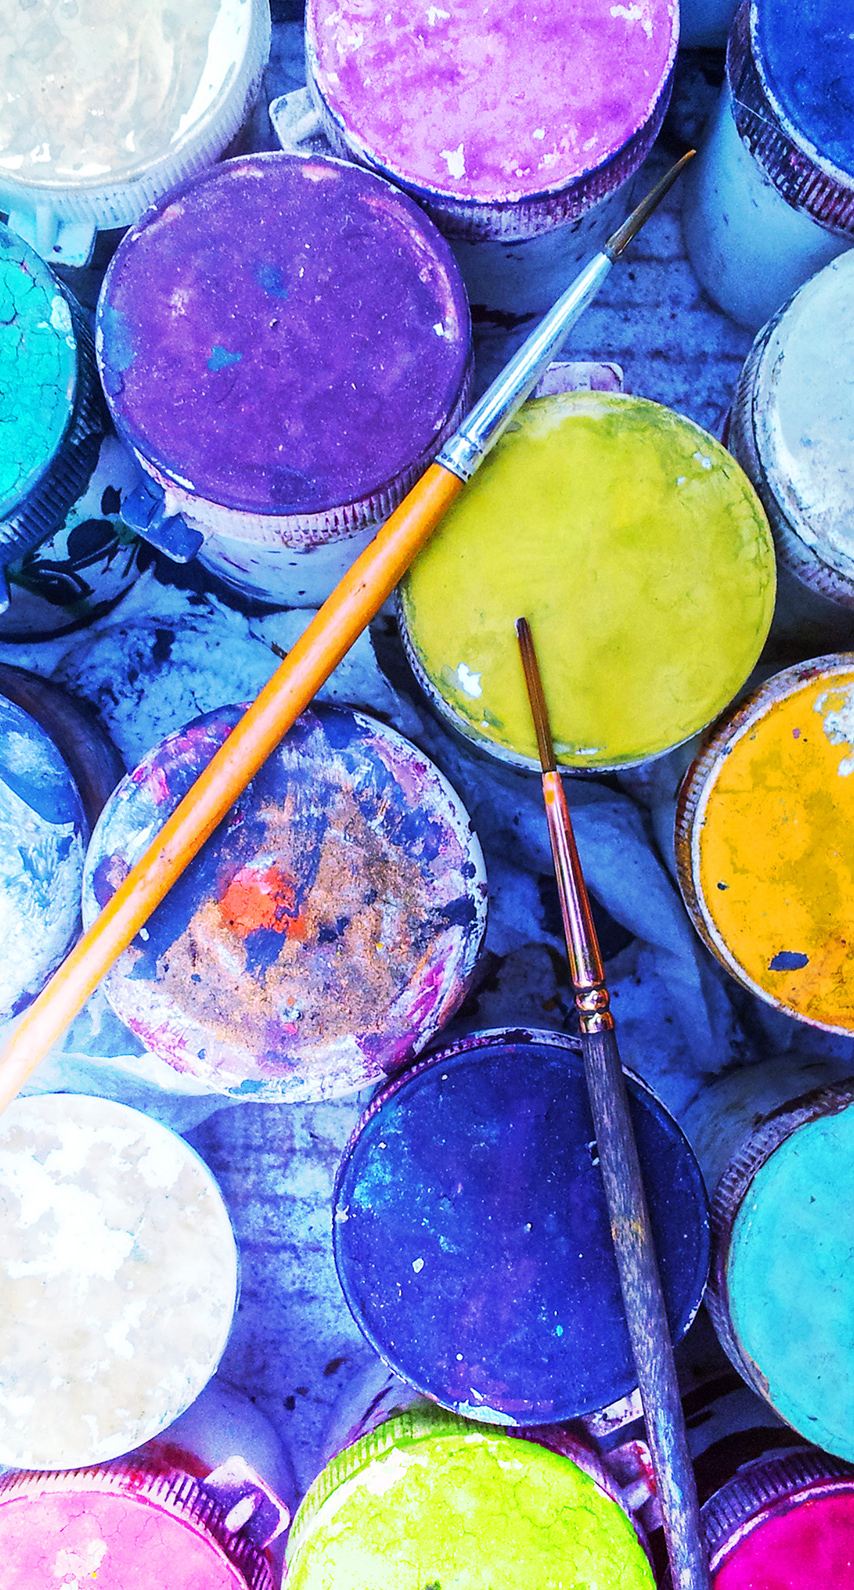 color, creativity, coloring, palette, craft, brush, container, dye